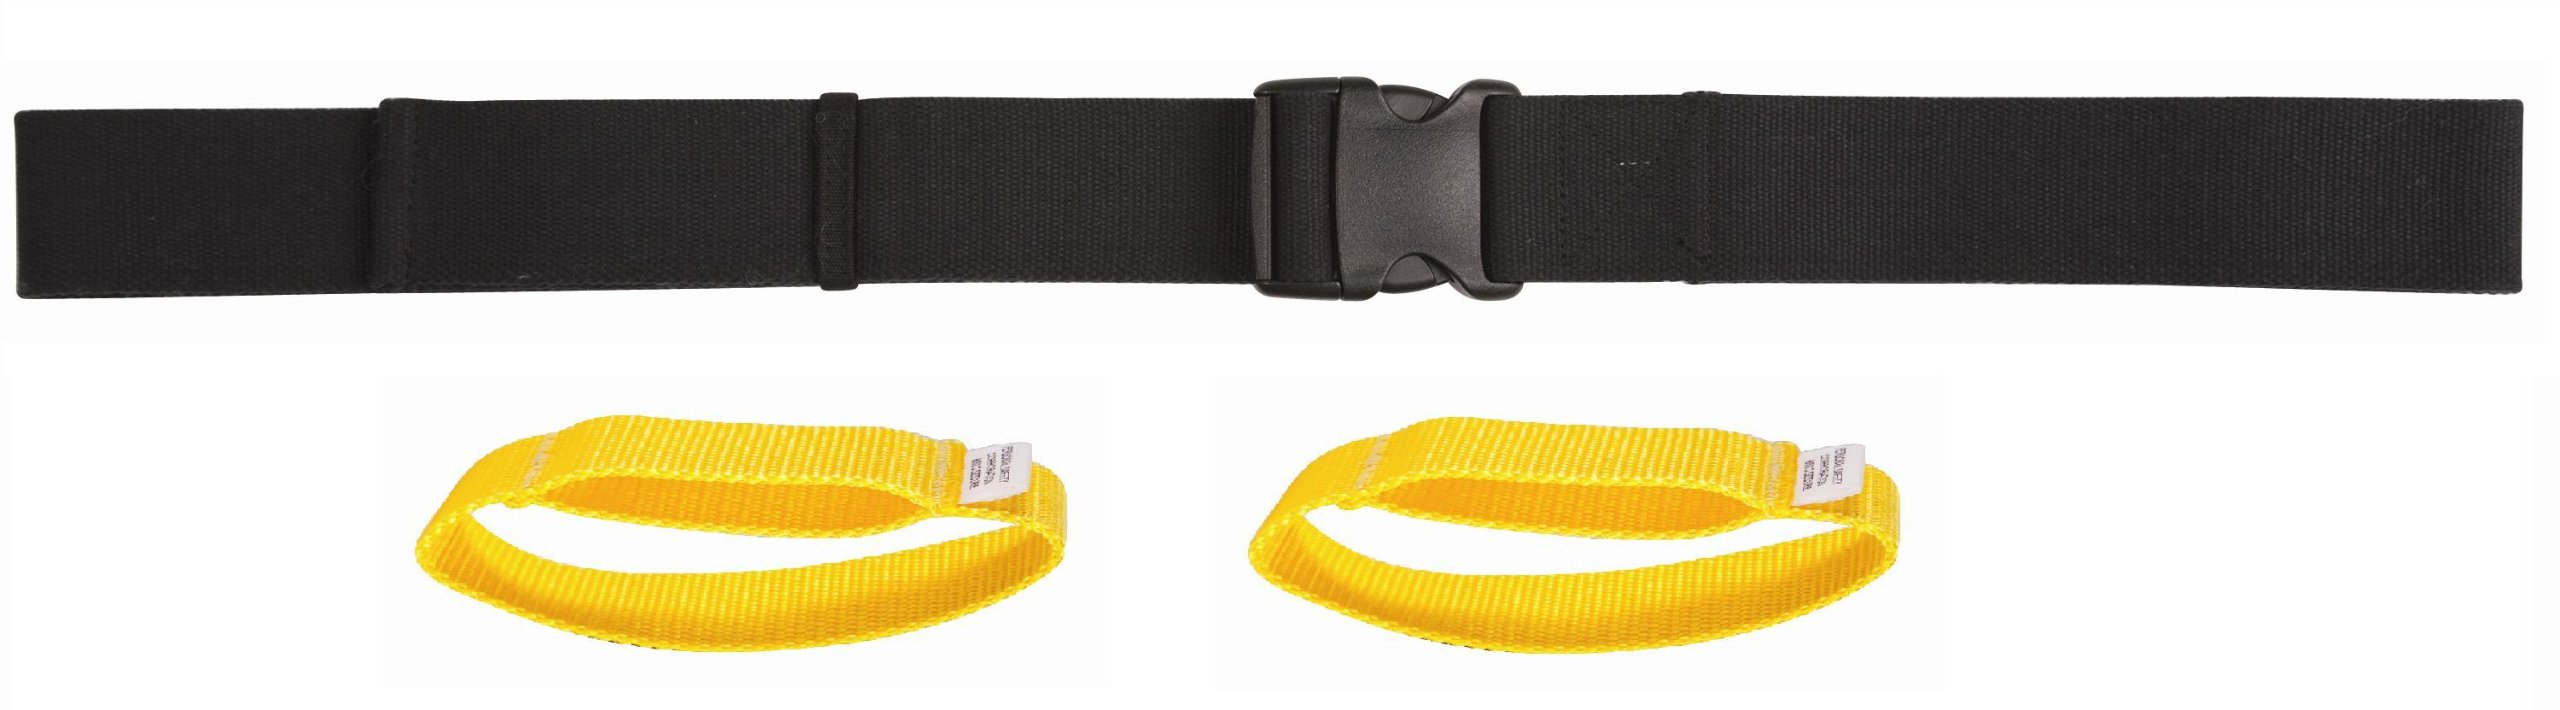 Secure Transfer Gait Belt with Easy Release Buckle and Detachable Hand Loops and, Black, 60 Inch Length by Secure